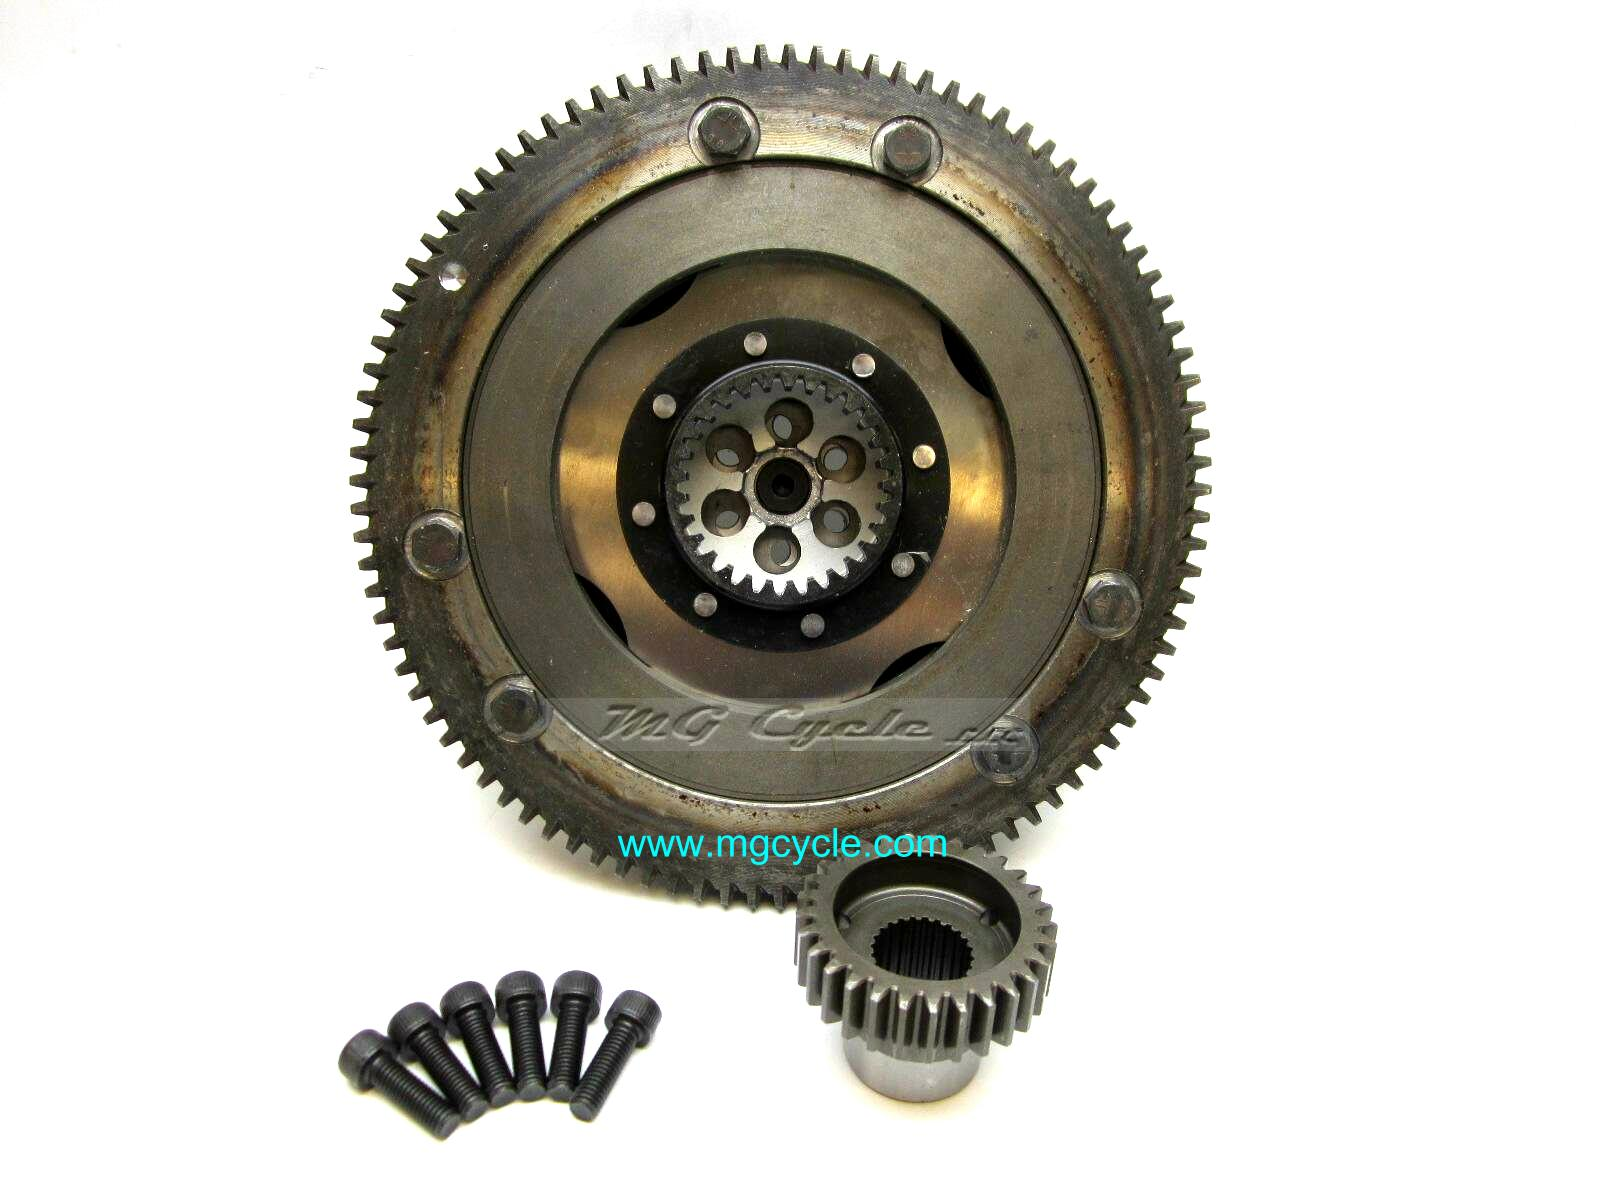 RAM low inertia clutch kit, bikes with no flywheel sensors